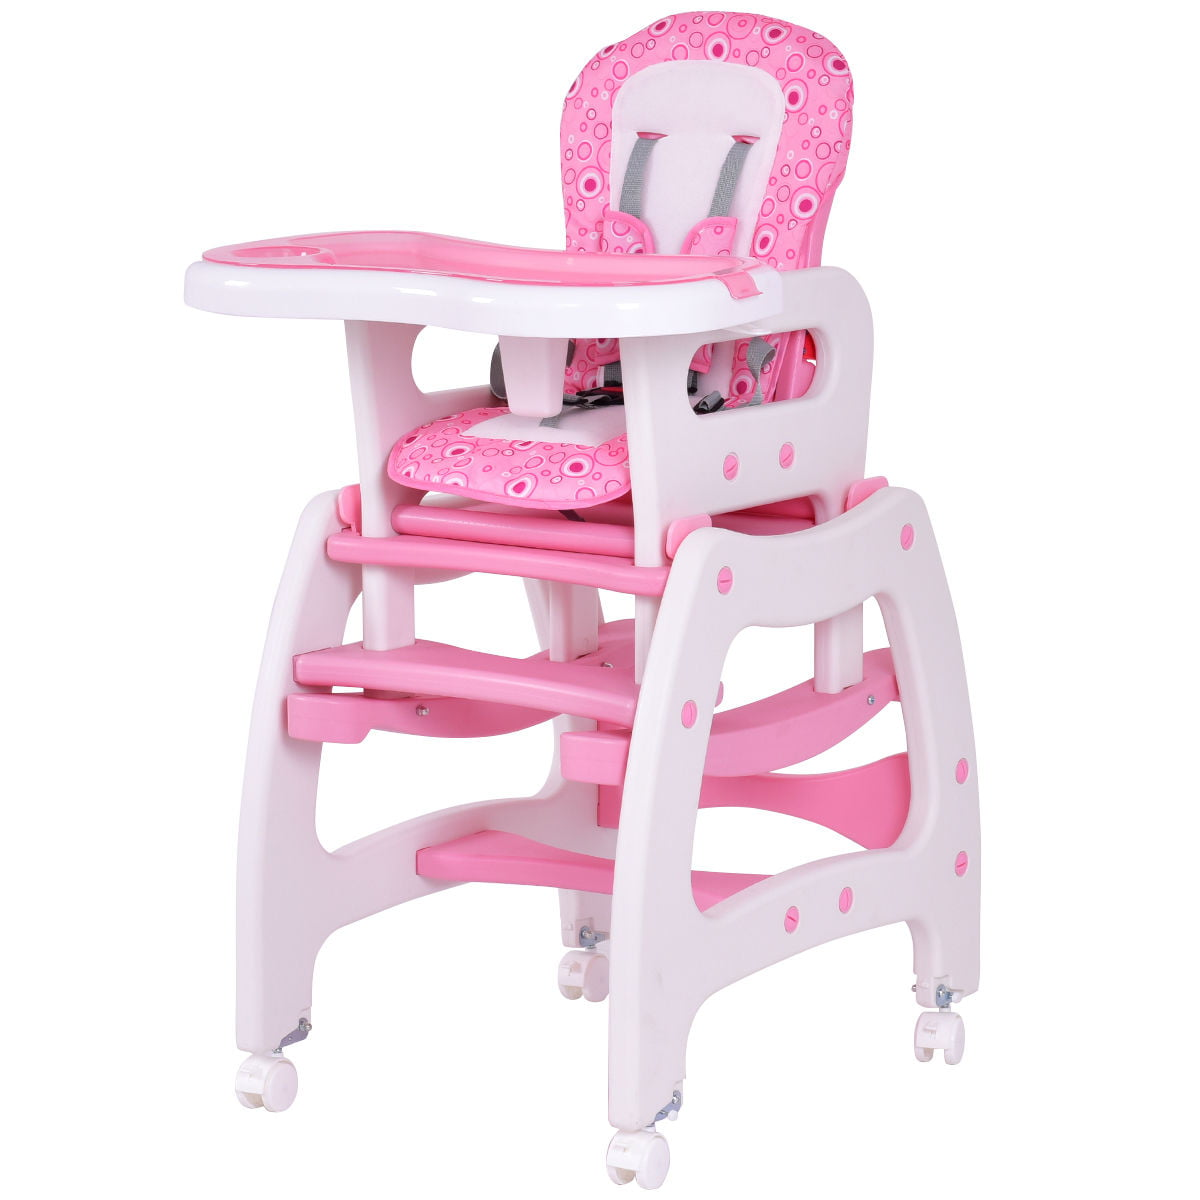 Costway 3 in 1 Baby High Chair Convertible Play Table Seat Booster Toddler Feeding Tray Pink by Costway